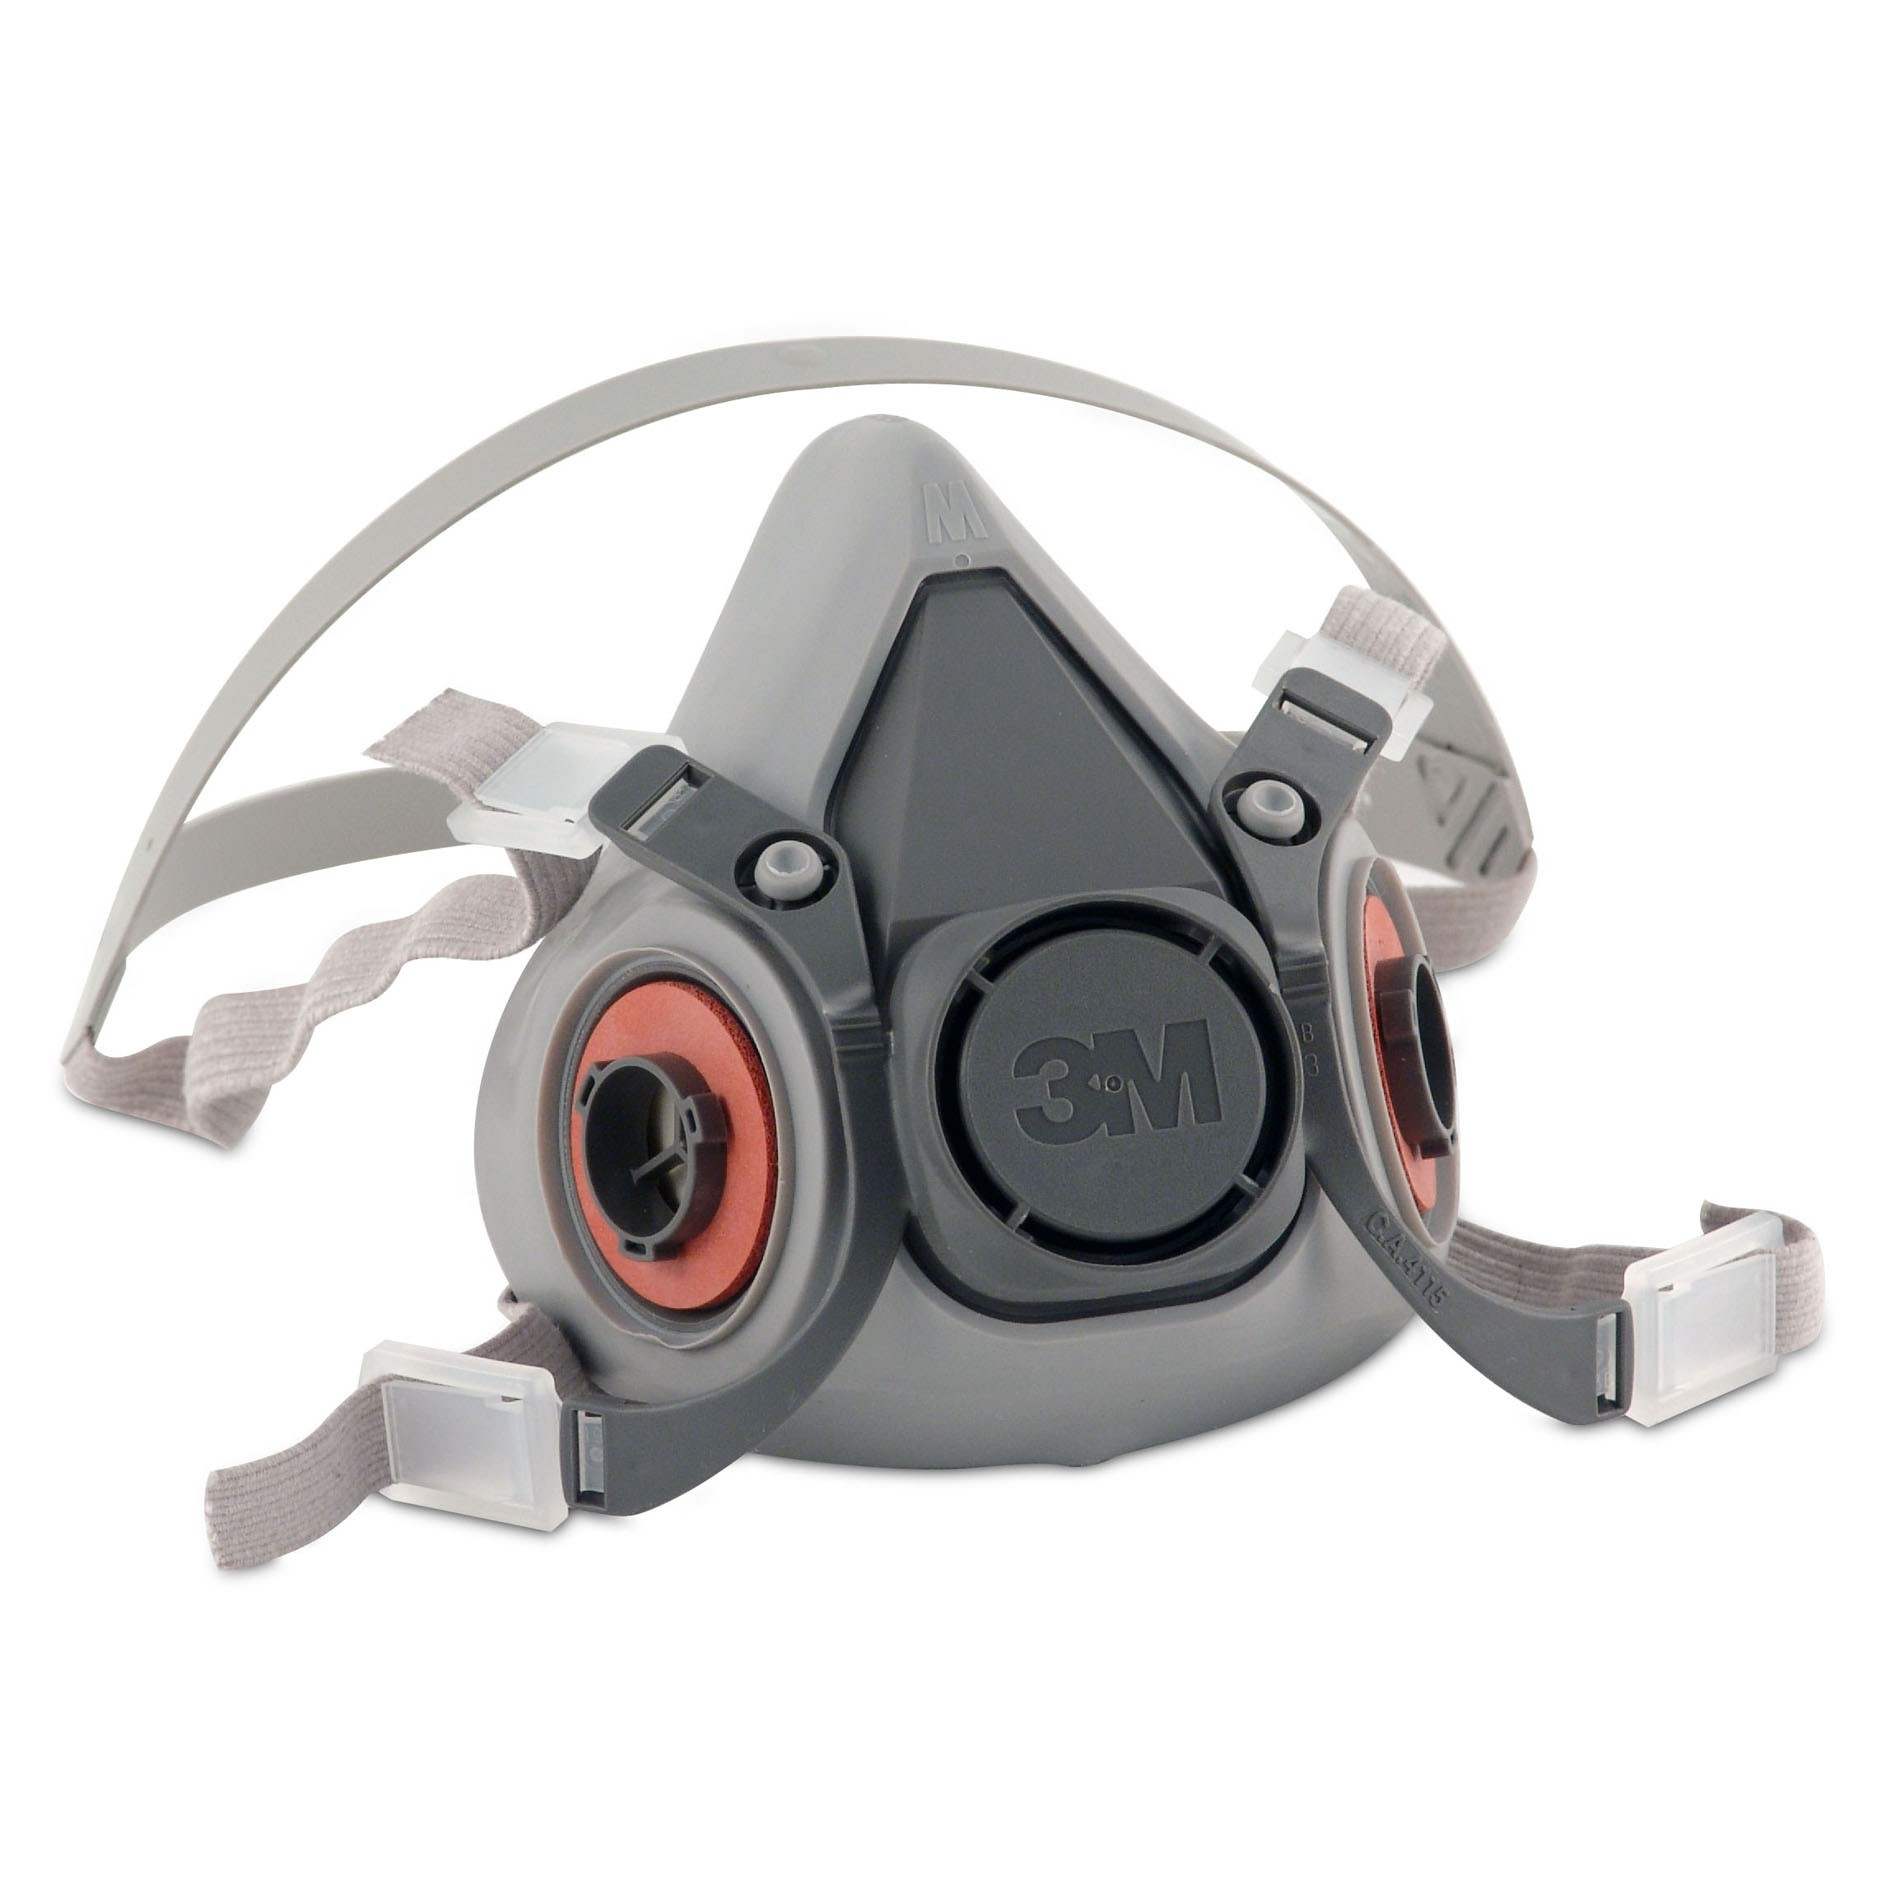 respirator used to protect from muriatic acid fumes